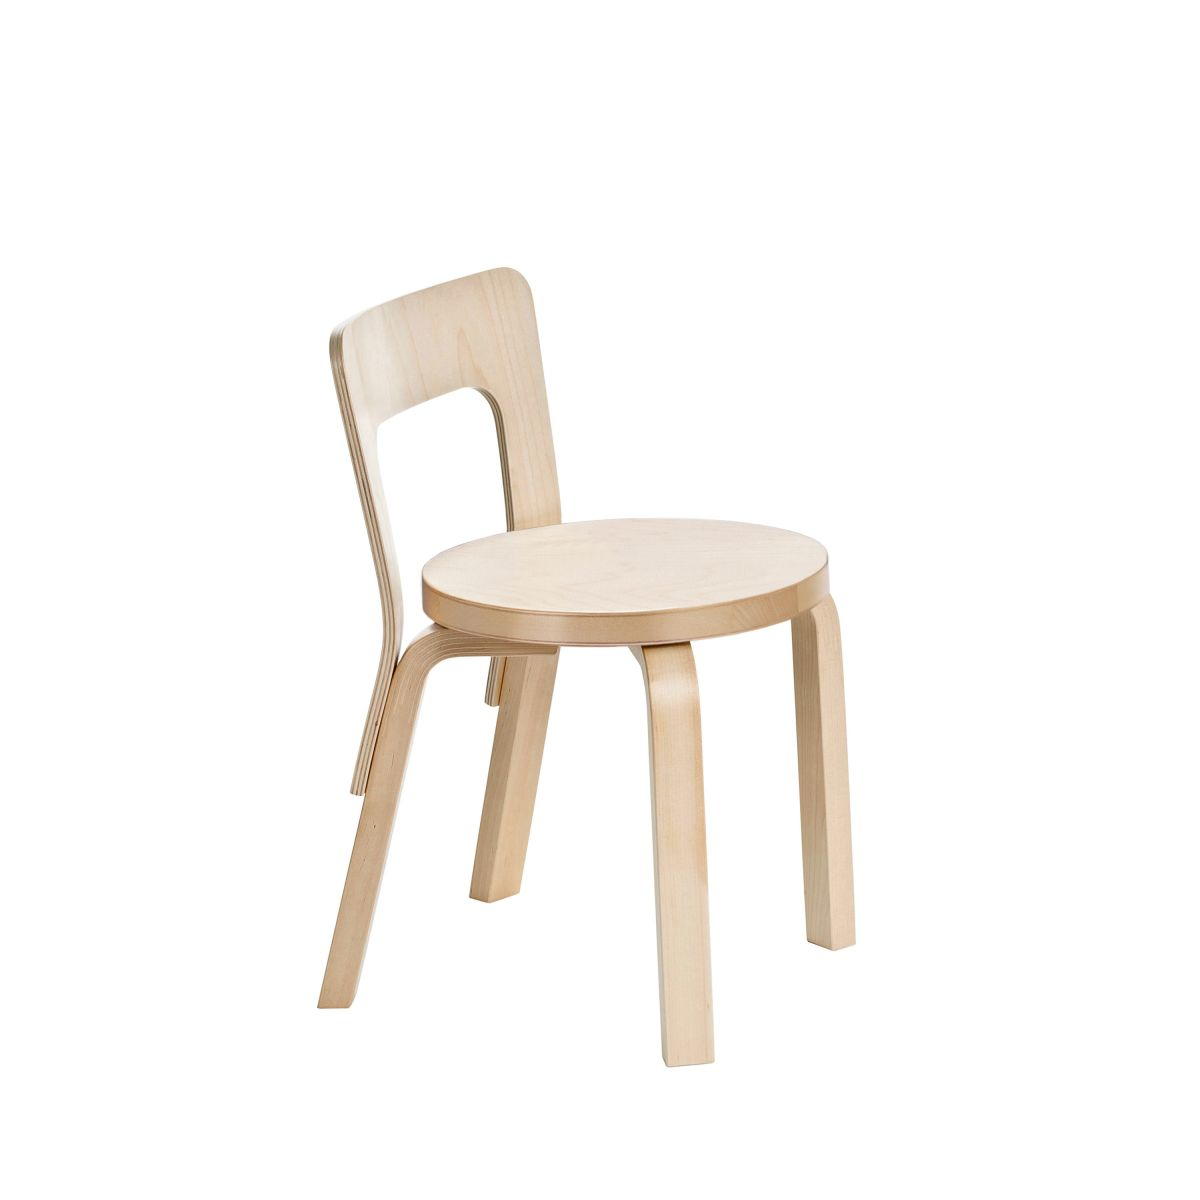 Childrens Chair N65 Legs Birch Seat Birch 2463532